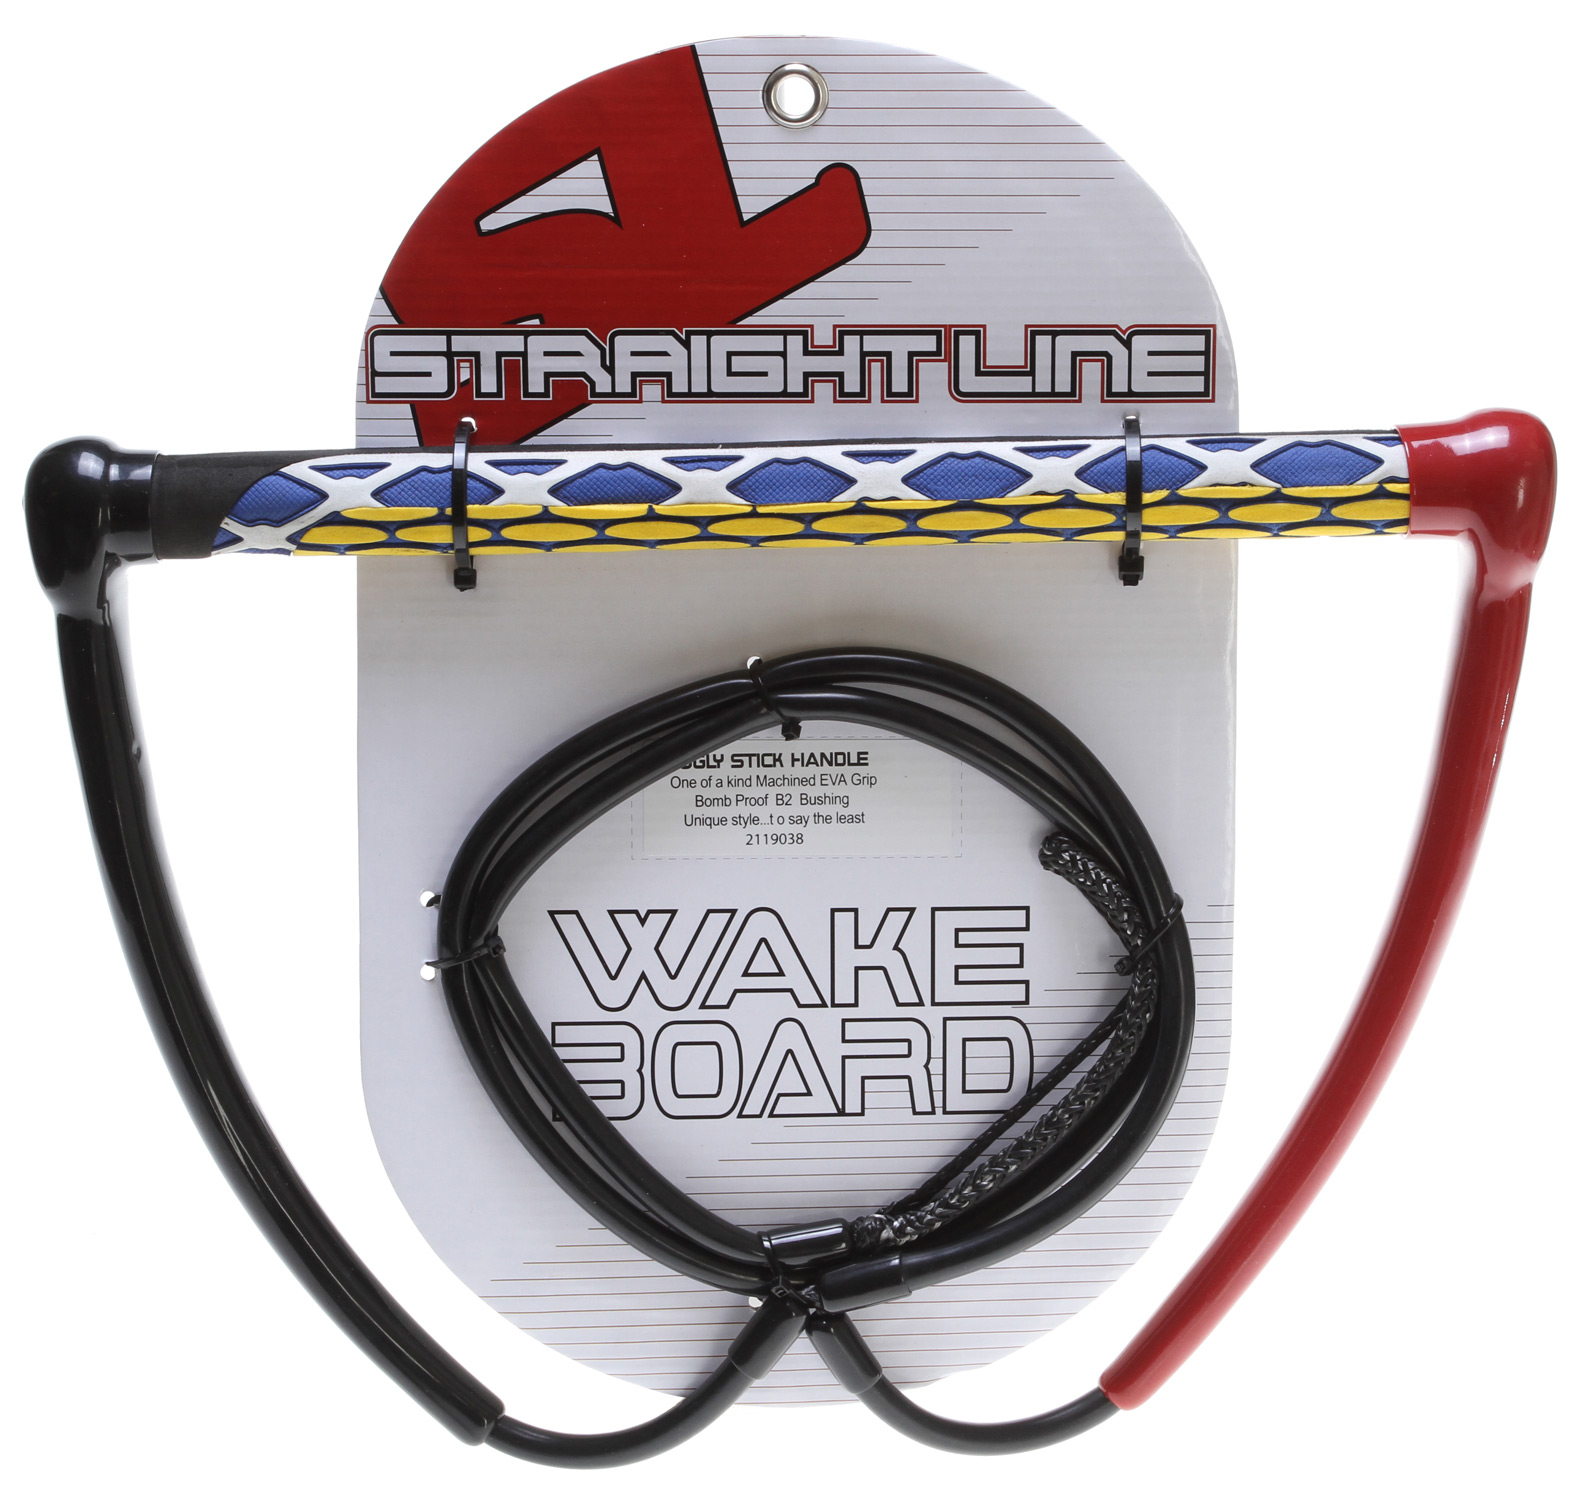 Wake Key Features of the Straight Line Ugly Stick Wakeboard Handle: 12 inch Dip Molded End Cap: PVC dipped endcap, lightweight and pad printed with unique color ways 4mm Dyneema Leader: Lightweight, Dyneema leader line, no stretch PVC Dyneema Tubing: PVC tubing that covers Dyneema leader line to resist abrasion Random EVA Molded Grip: Unique pieces of EVA pieced together to form unique grips T6-6061 Aluminum Bar: No flex, no bend, lightweight bar extrusion with built in floats. - $44.95